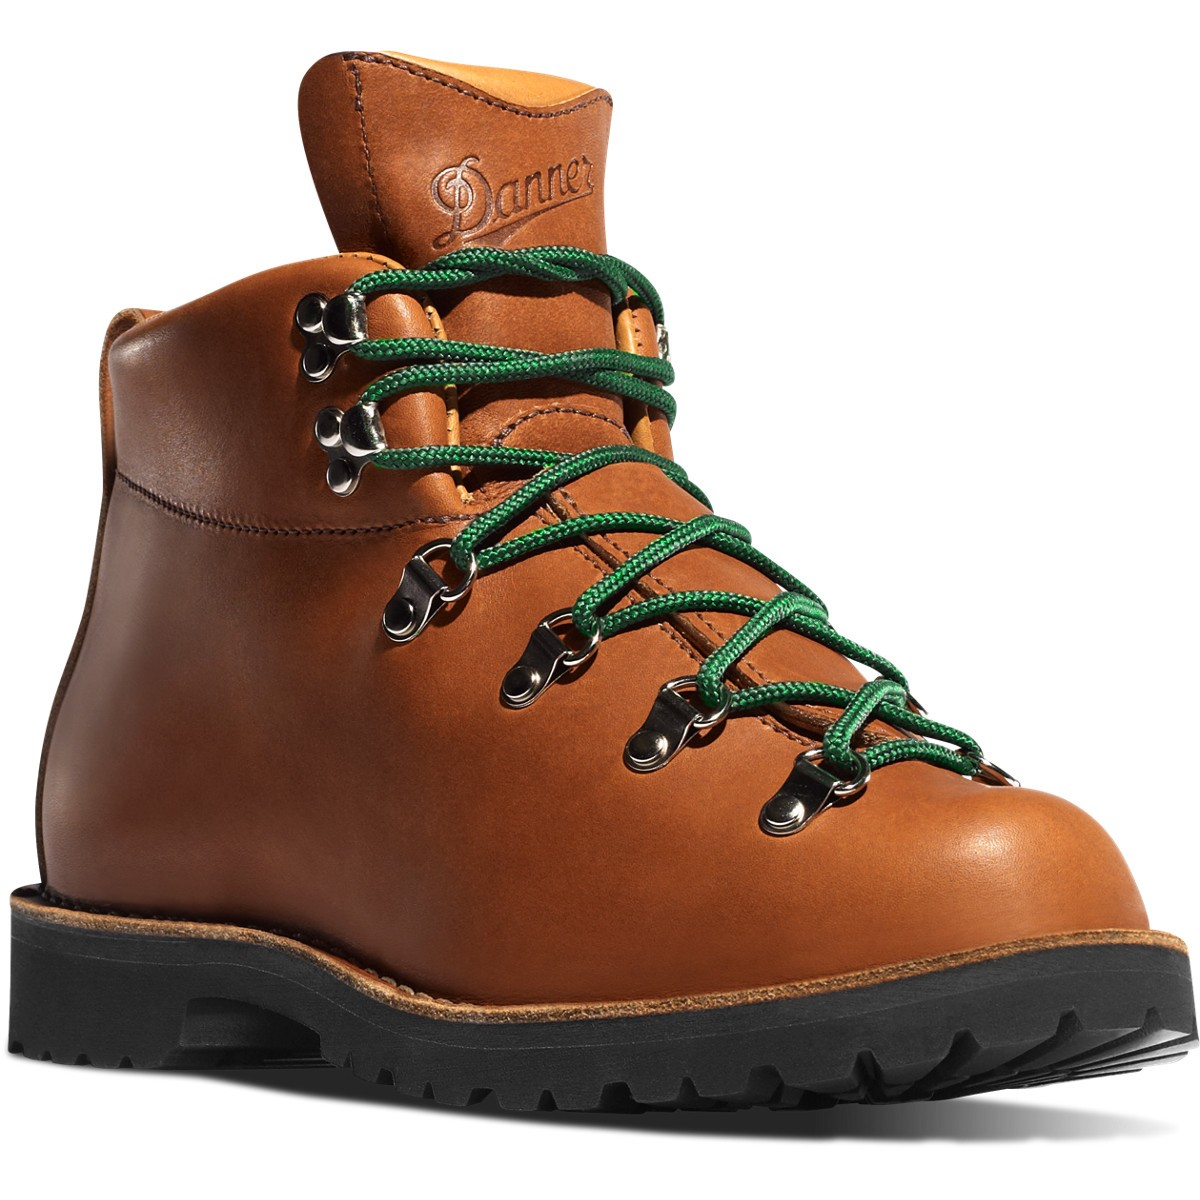 Danner Mountain Trail Hiking Boot